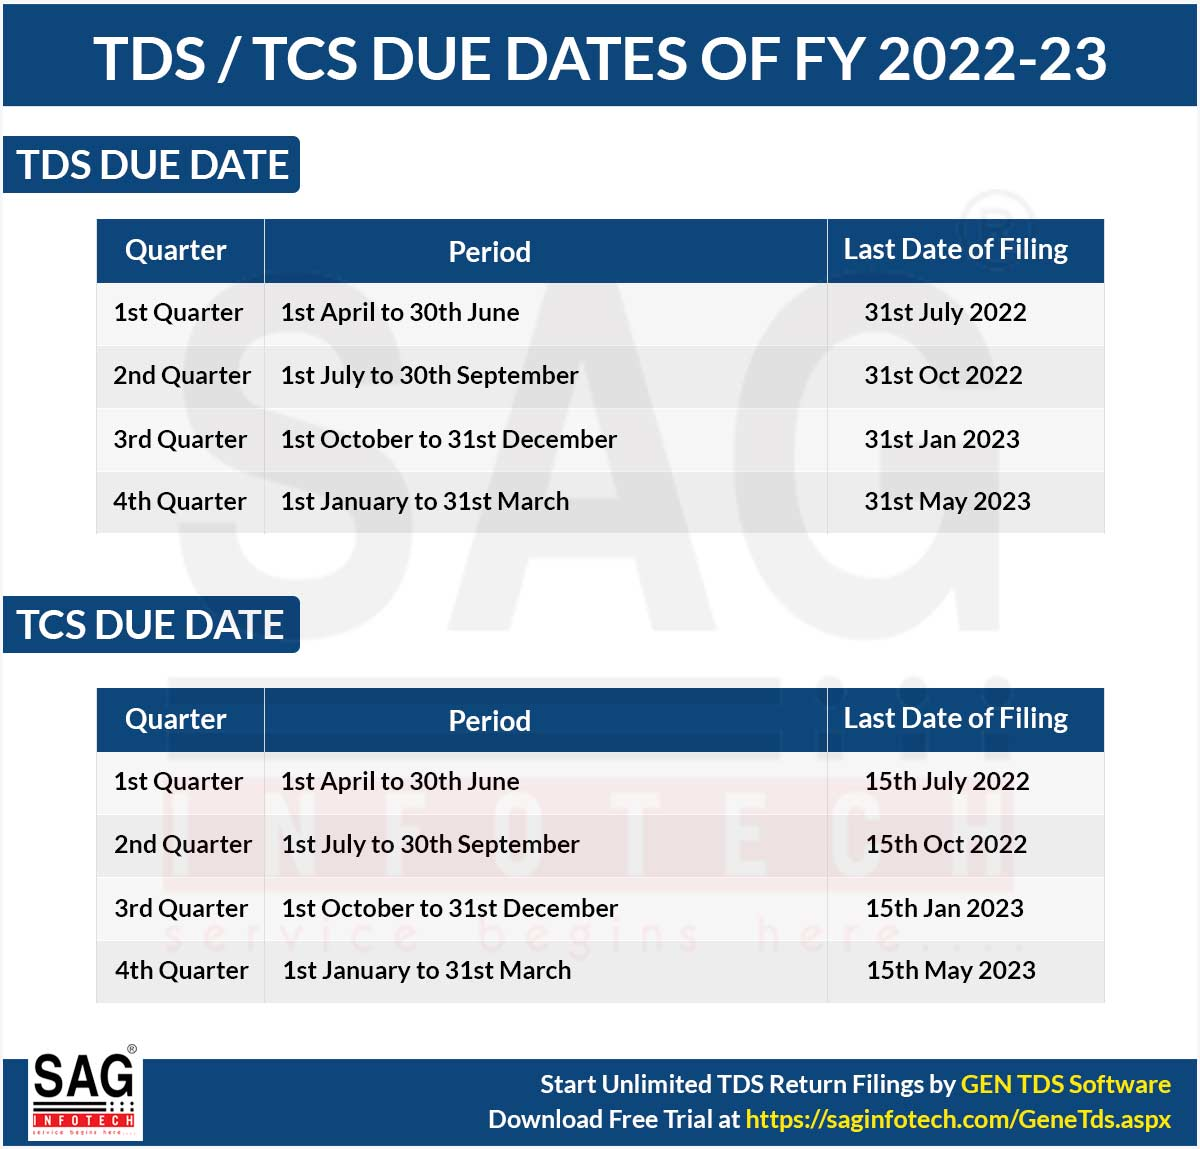 Due Dates for E-Filing of TDS/TCS Return AY 2021-22 (FY 2020-21)